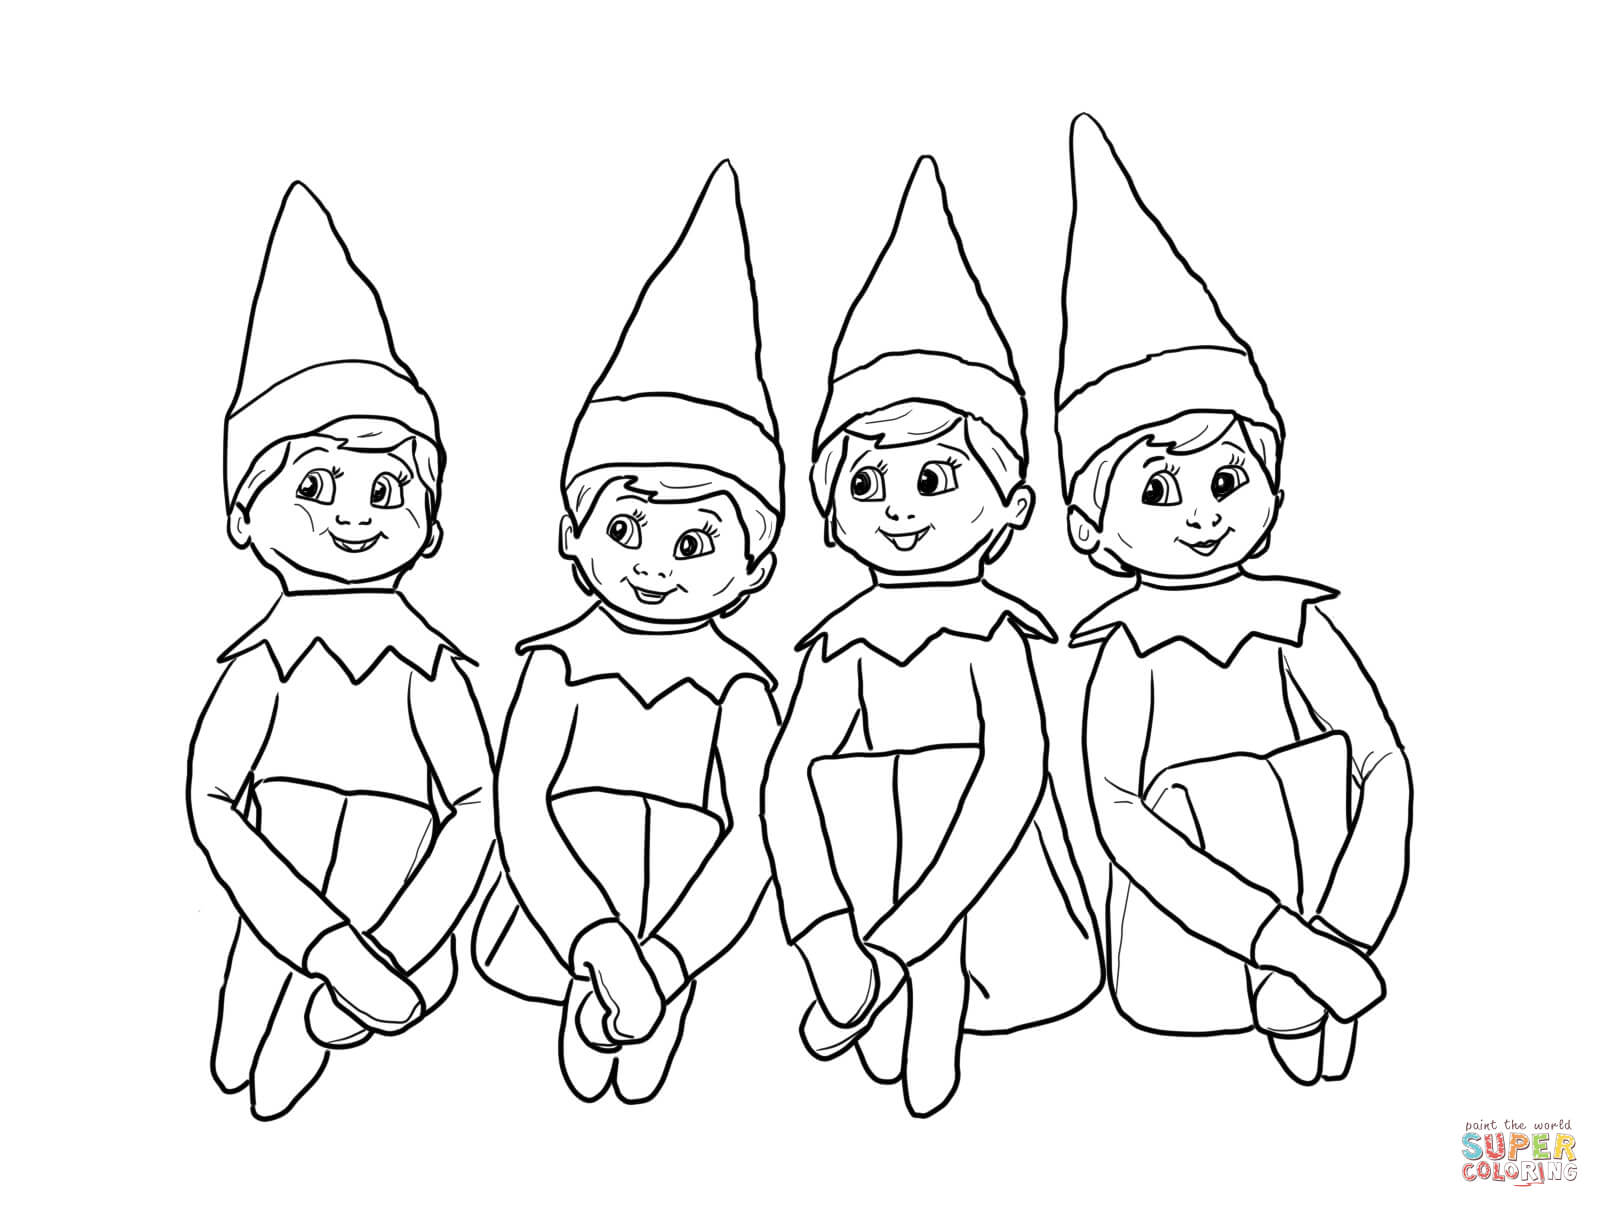 elf on the shelf coloring book eelf on the shelf printable christmas coloring pages coloring book elf shelf on the